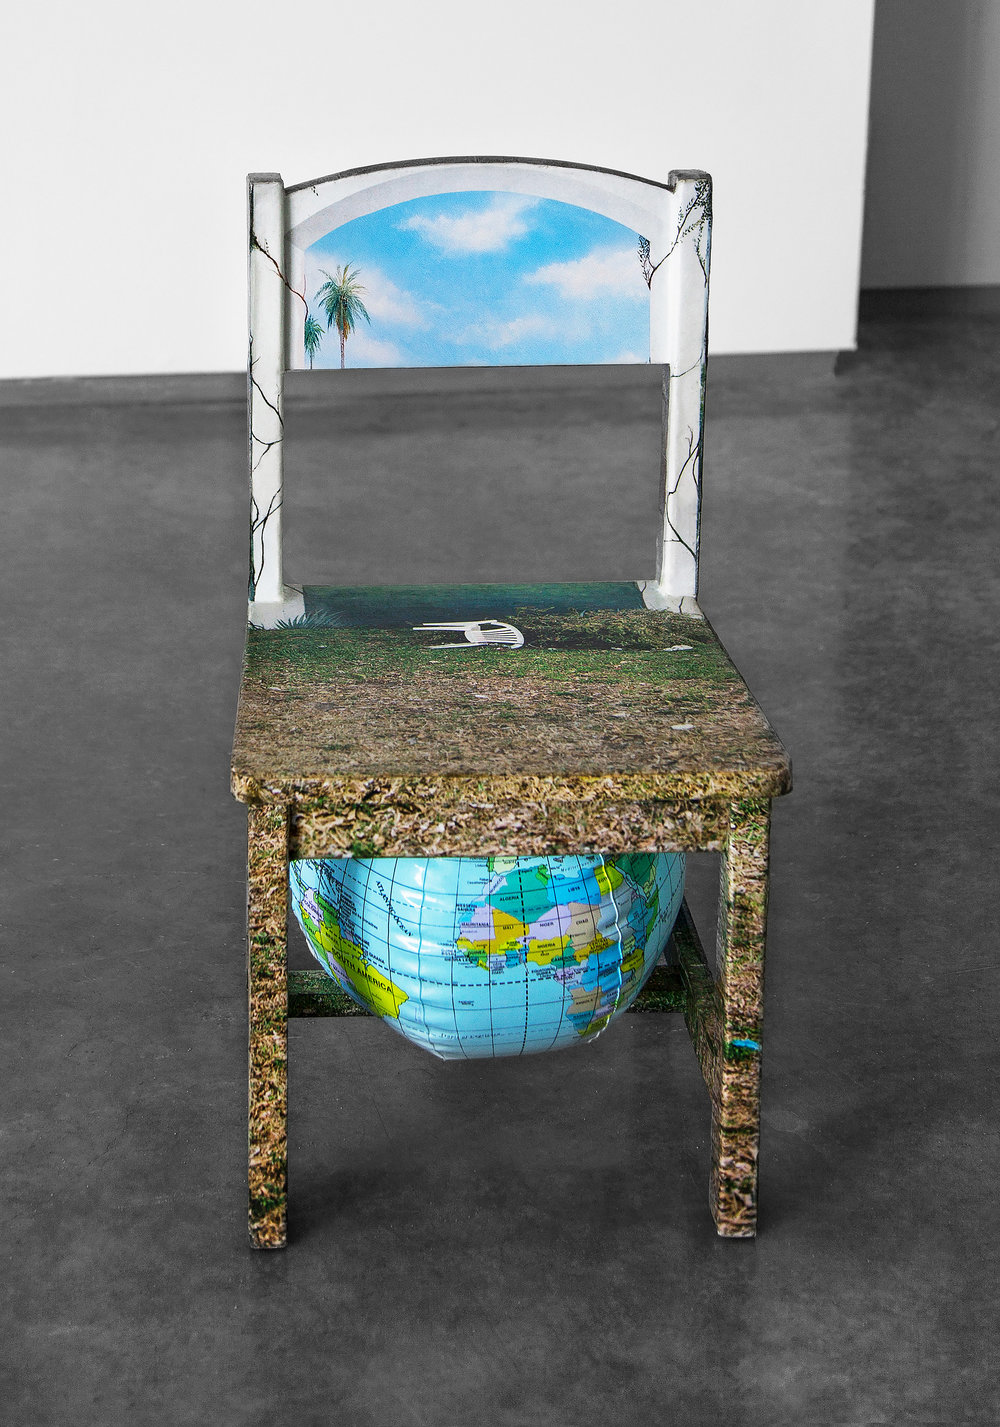 "Chair Mural II , 2014, 11""x 11.5""x 21"" (28 cm x 29.2 cm x 53.3 cm), archival inkjet print, glue, wood chair, inflatable globe"